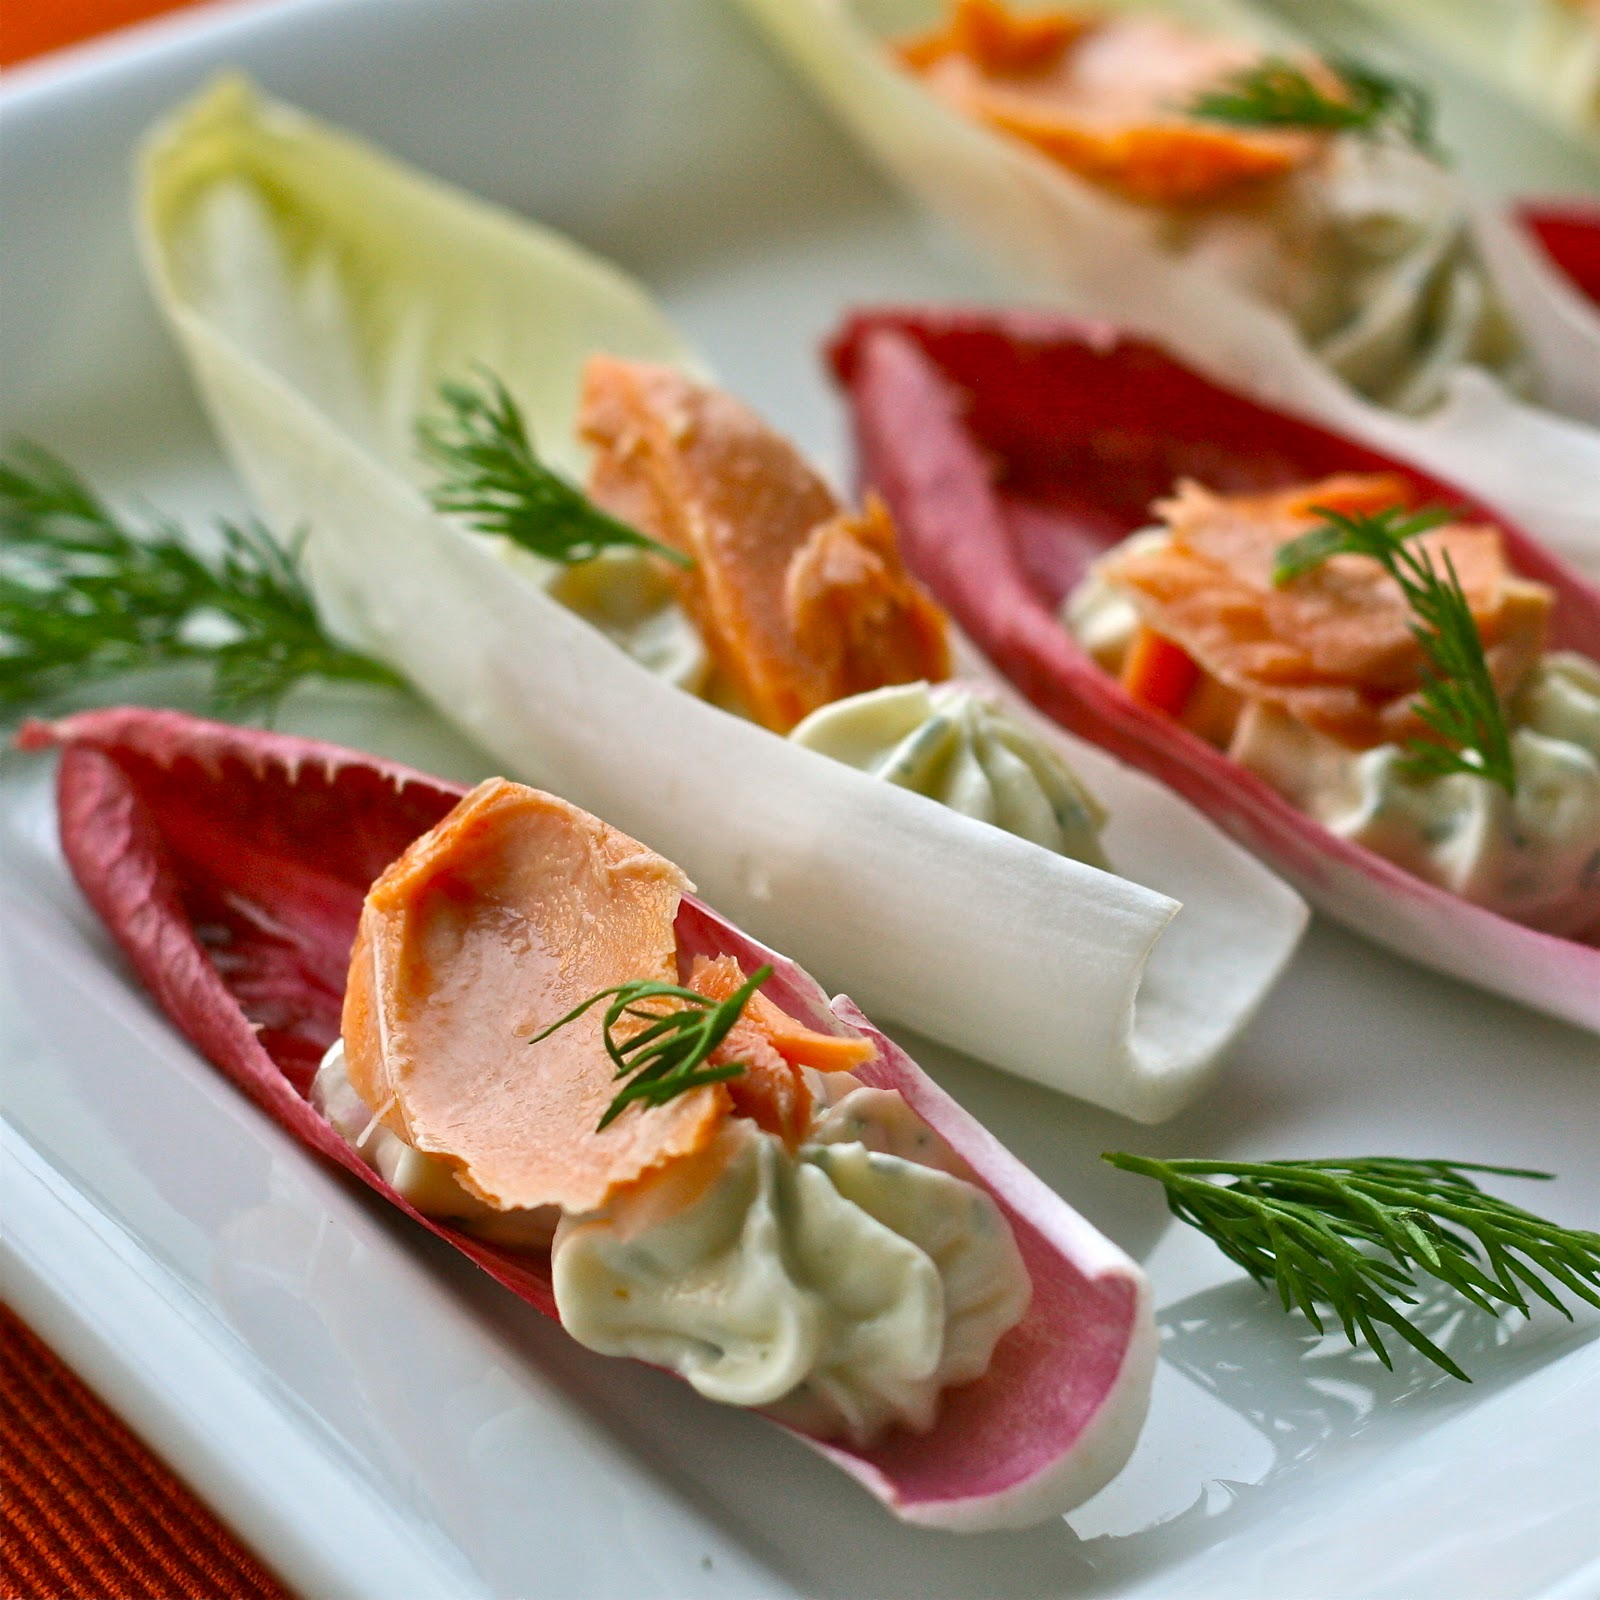 N is for: Neufchâtel and Smoked Salmon Endive Boats